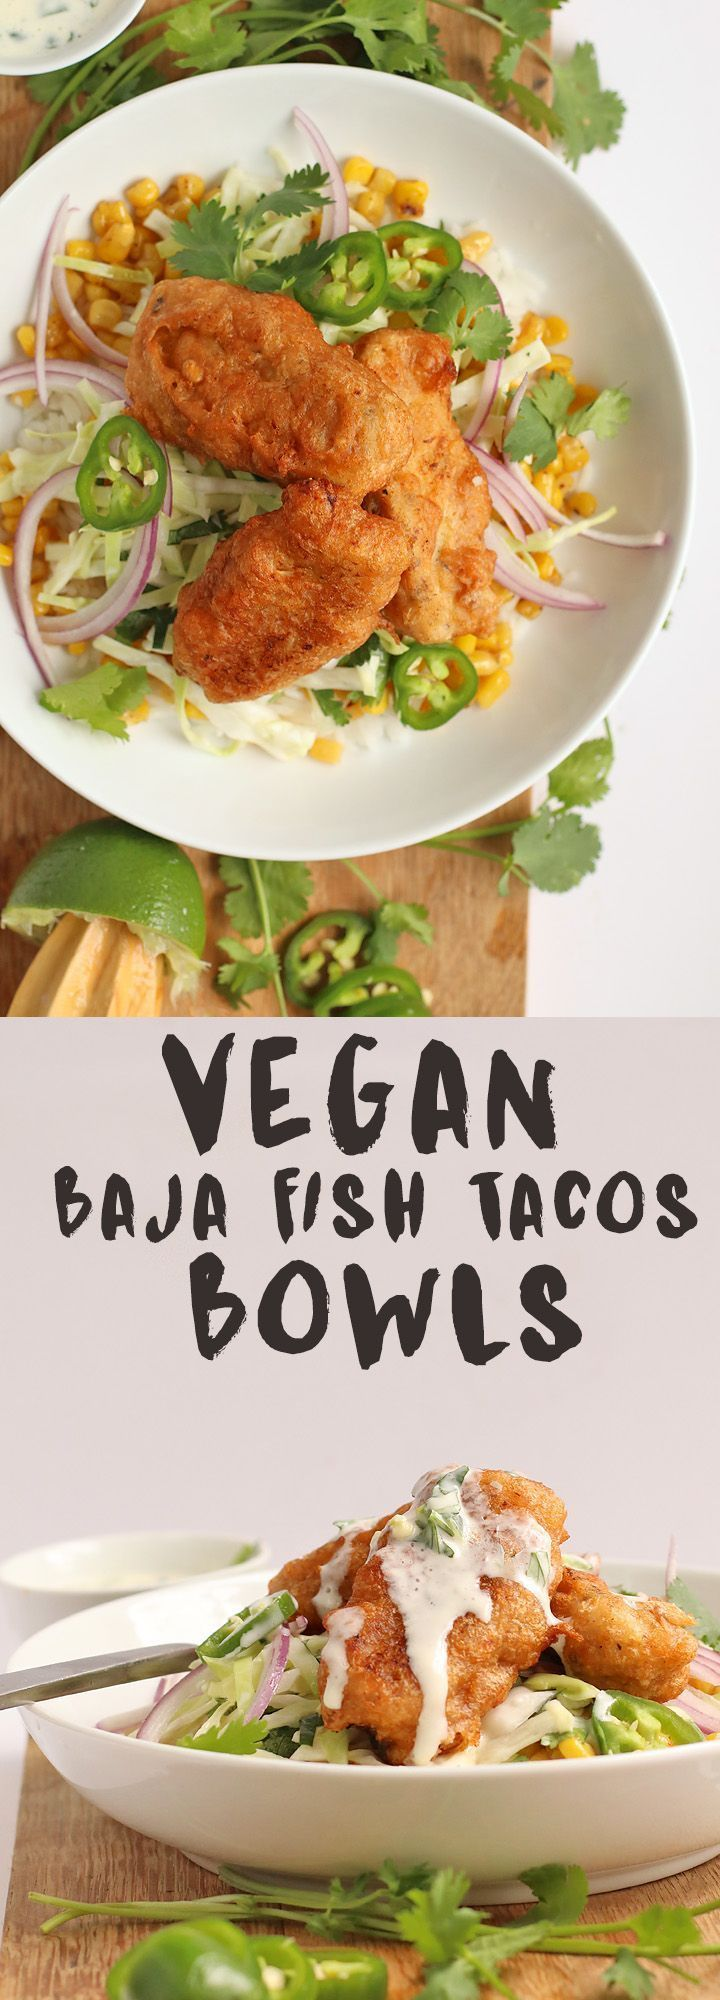 Made with beer battered vegan fish sticks, roasted corn, and cabbage slaw, these Vegan Baja Fish Taco Bowls are delightfully refreshing and unbelievable delicious. with beer battered vegan fish sticks, roasted corn, and cabbage slaw, these Vegan Baja Fish Taco Bowls are delightfully refreshing and unbelievable delicious.